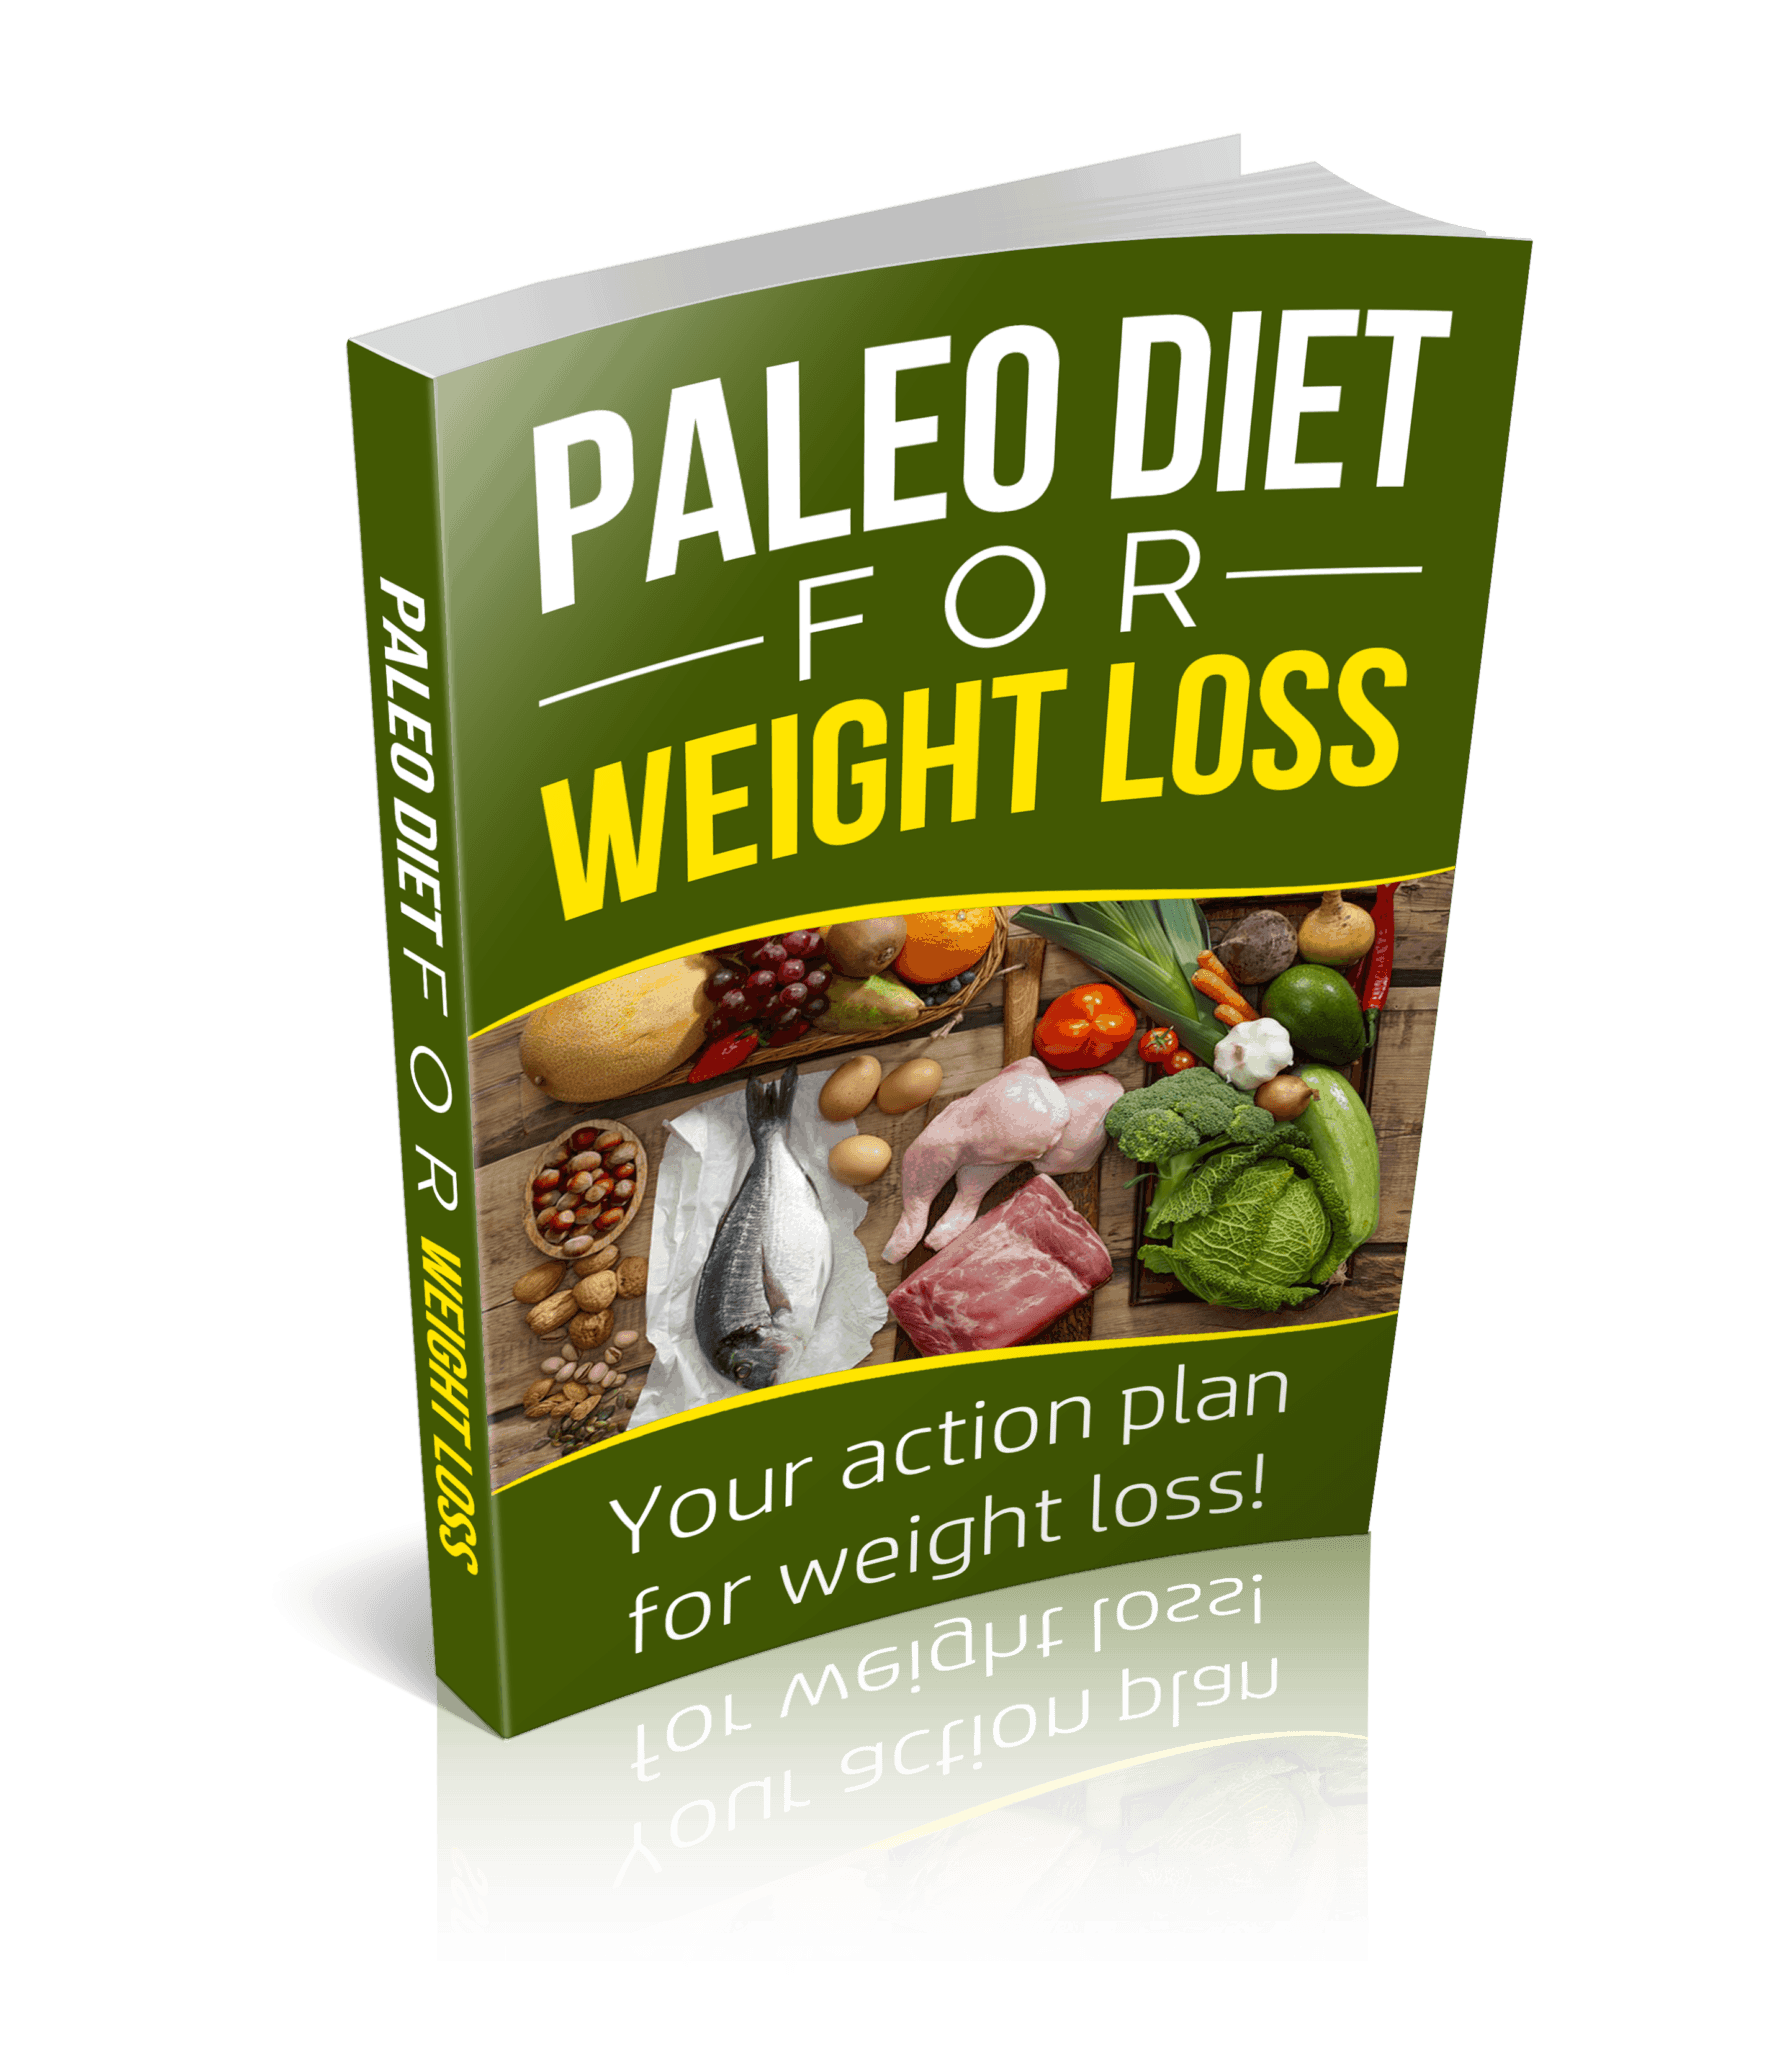 paleo diet for weight loss free ebook